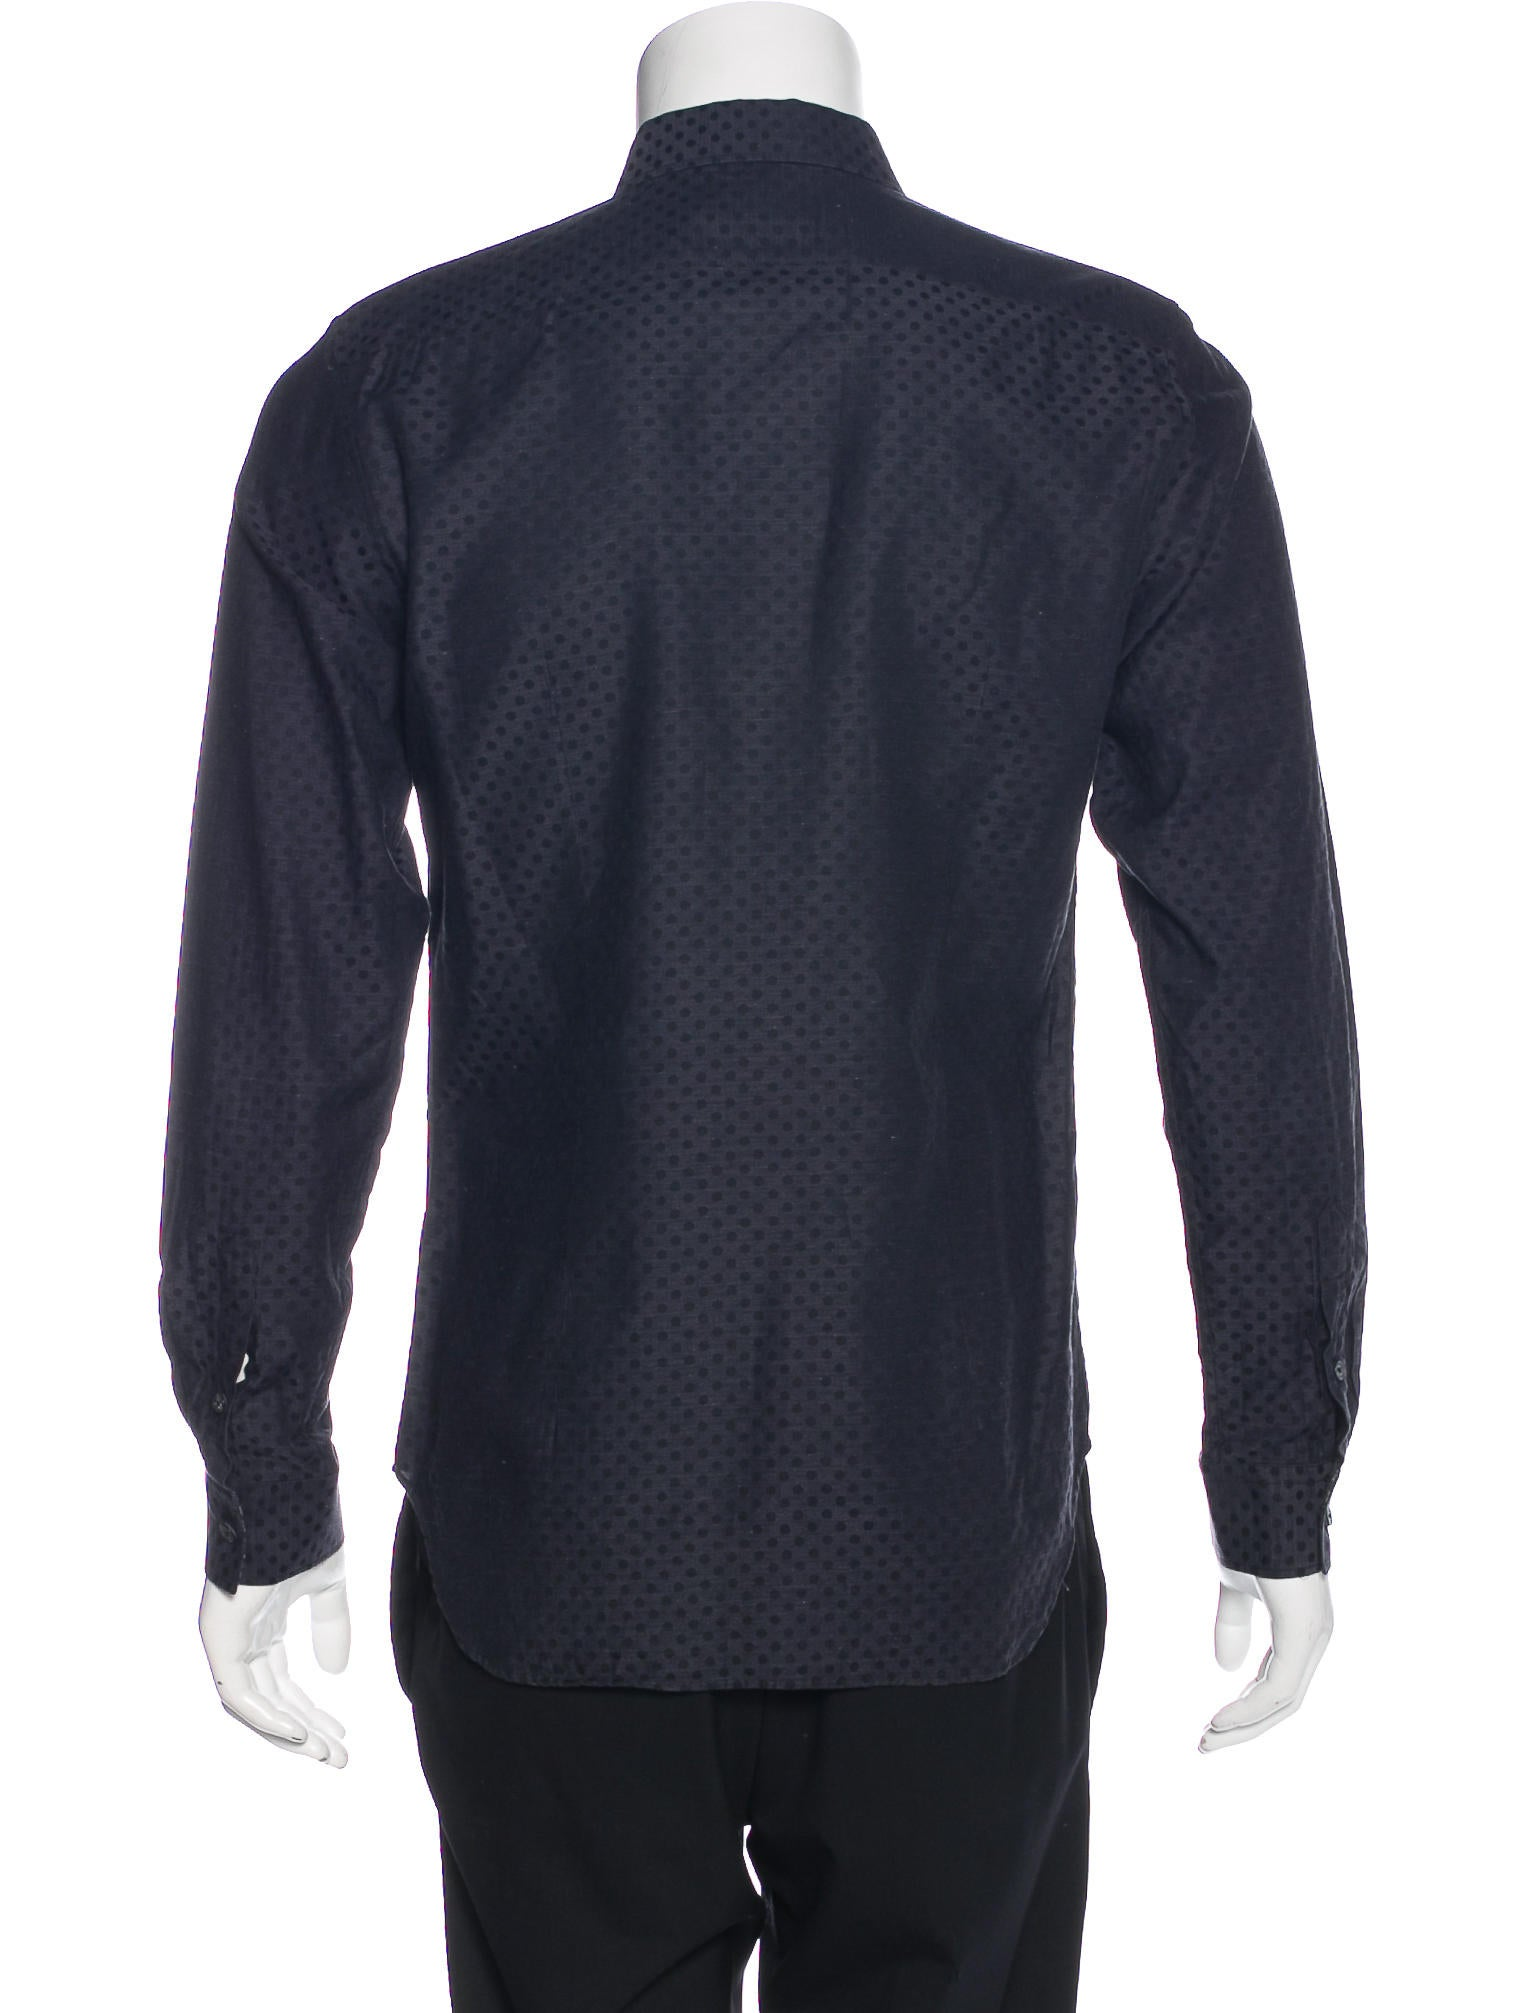 PS by Paul Smith Polka Dot Woven Shirt